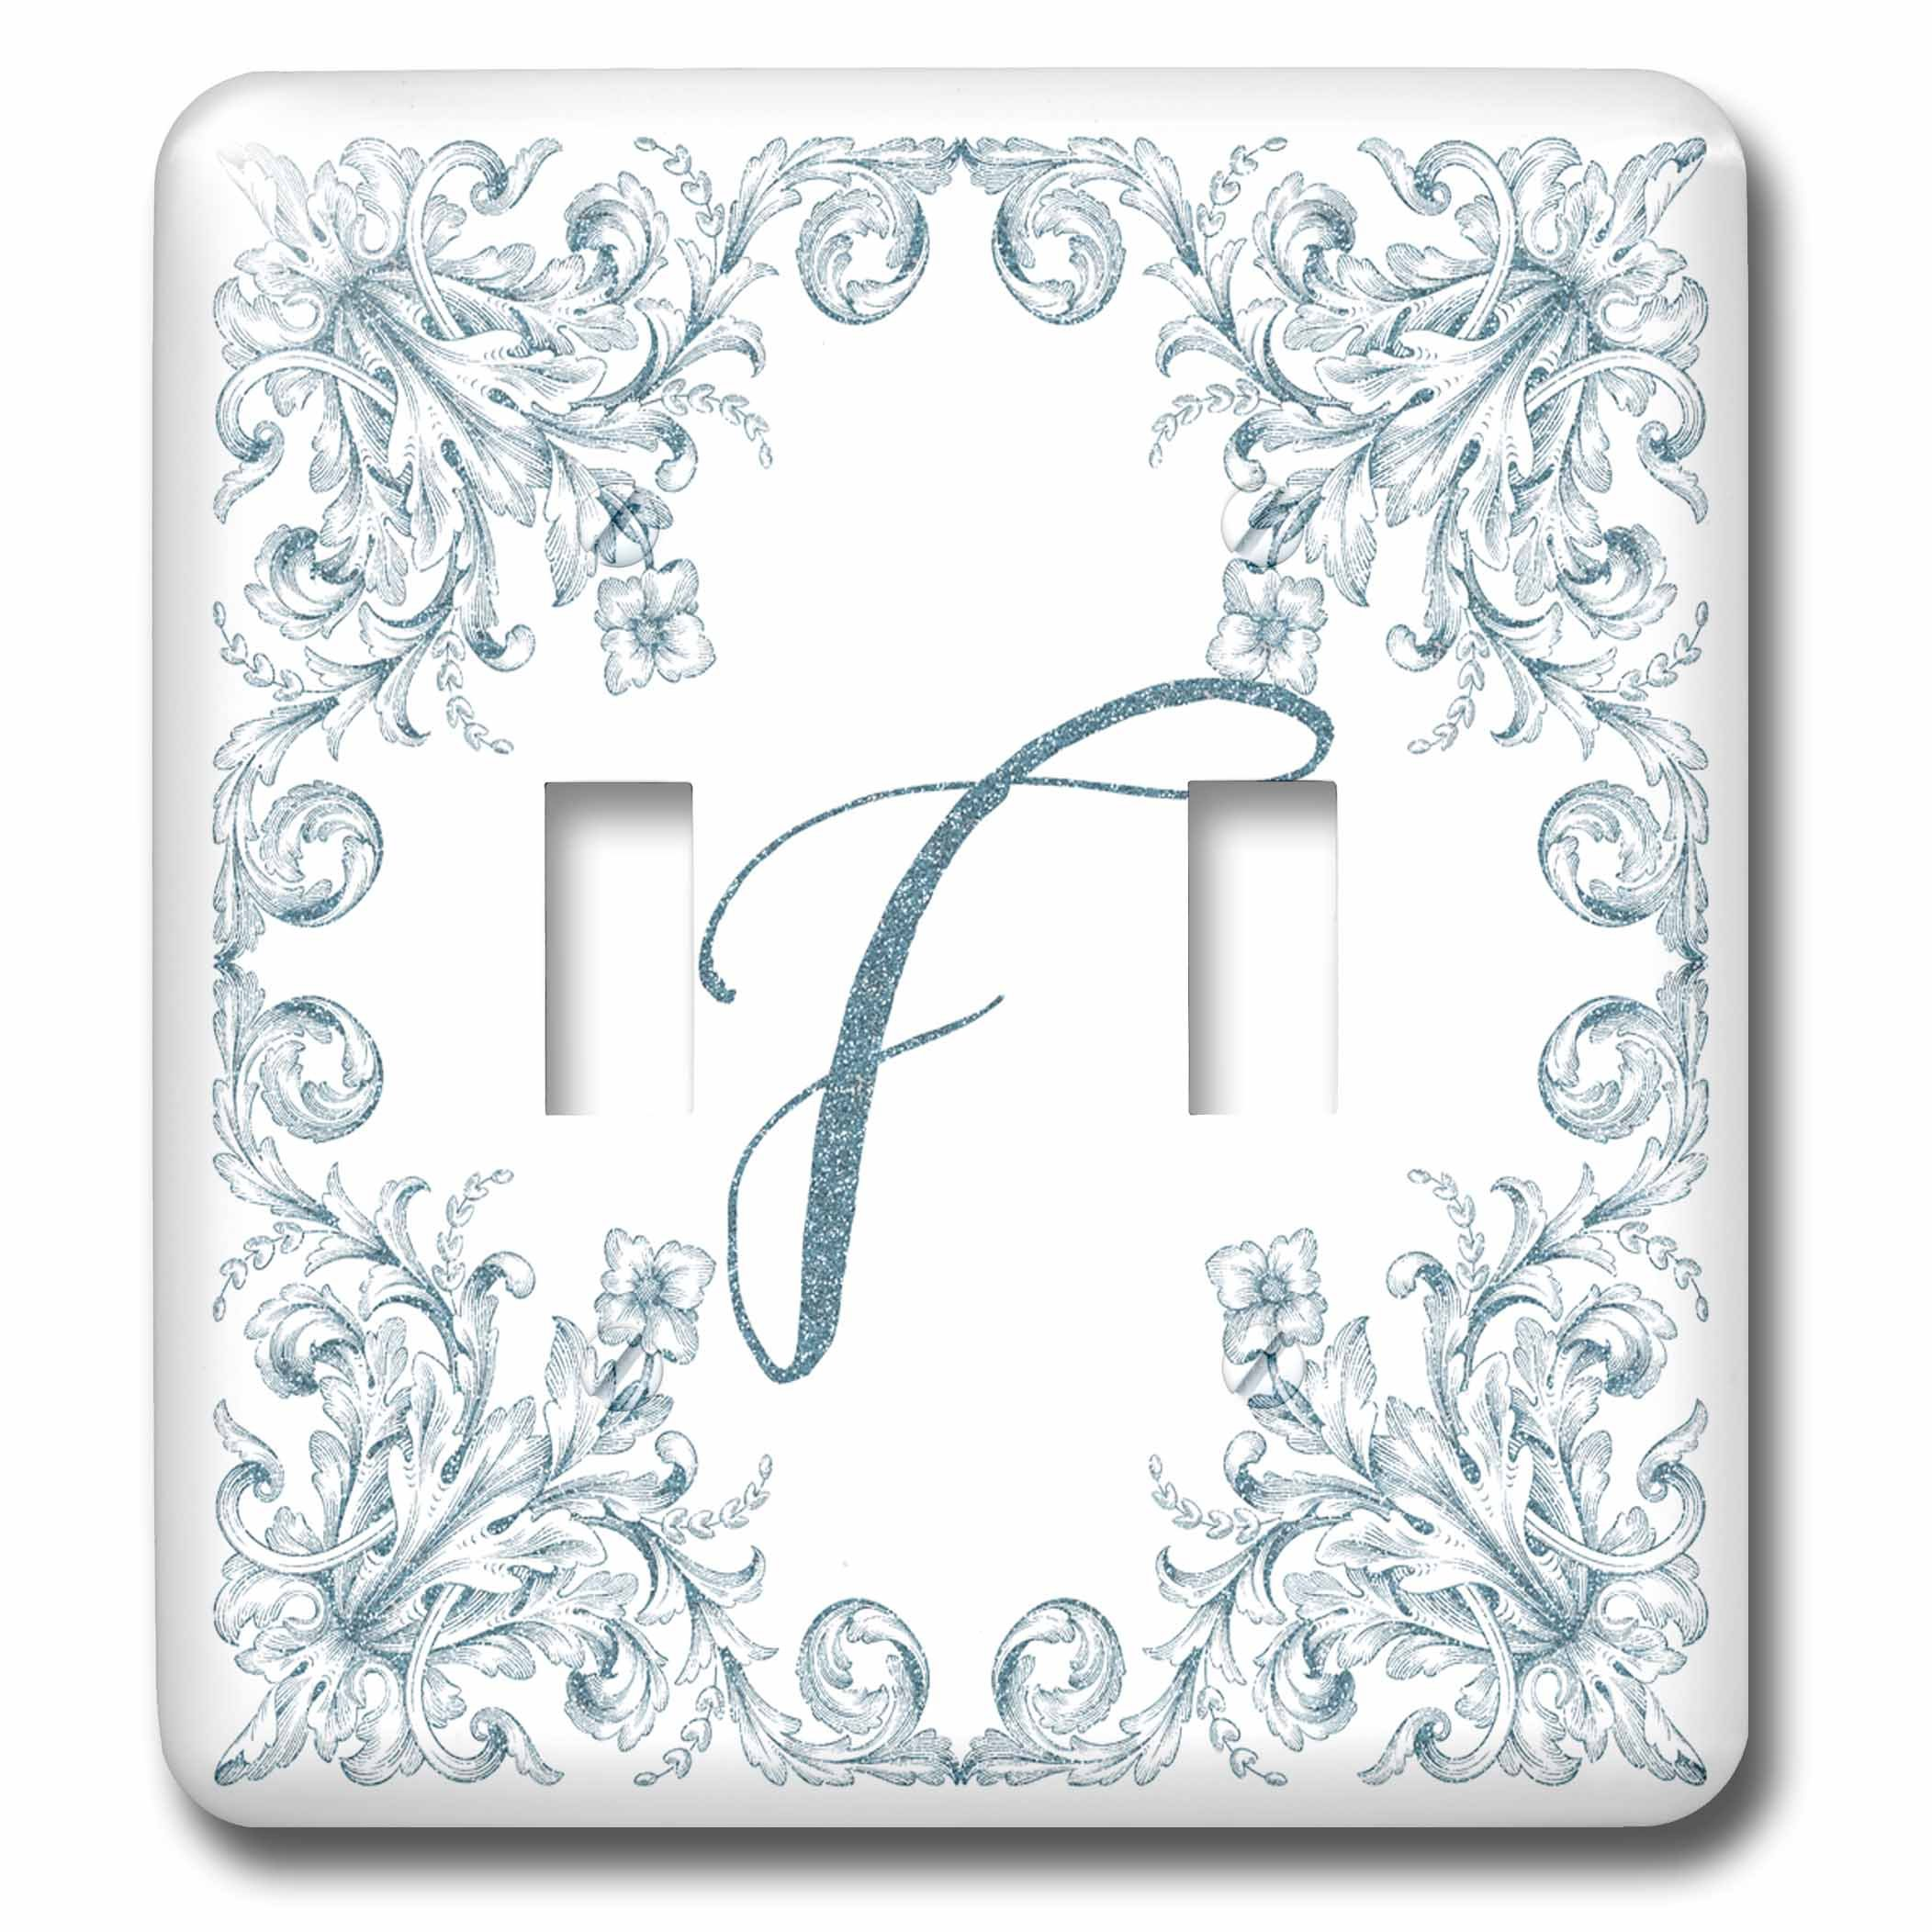 3dRose Uta Naumann Personal Monogram Initials - Letter F Personal Luxury Vintage Glitter Monogram-Personalized Initial - Light Switch Covers - double toggle switch (lsp_275305_2) by 3dRose (Image #1)